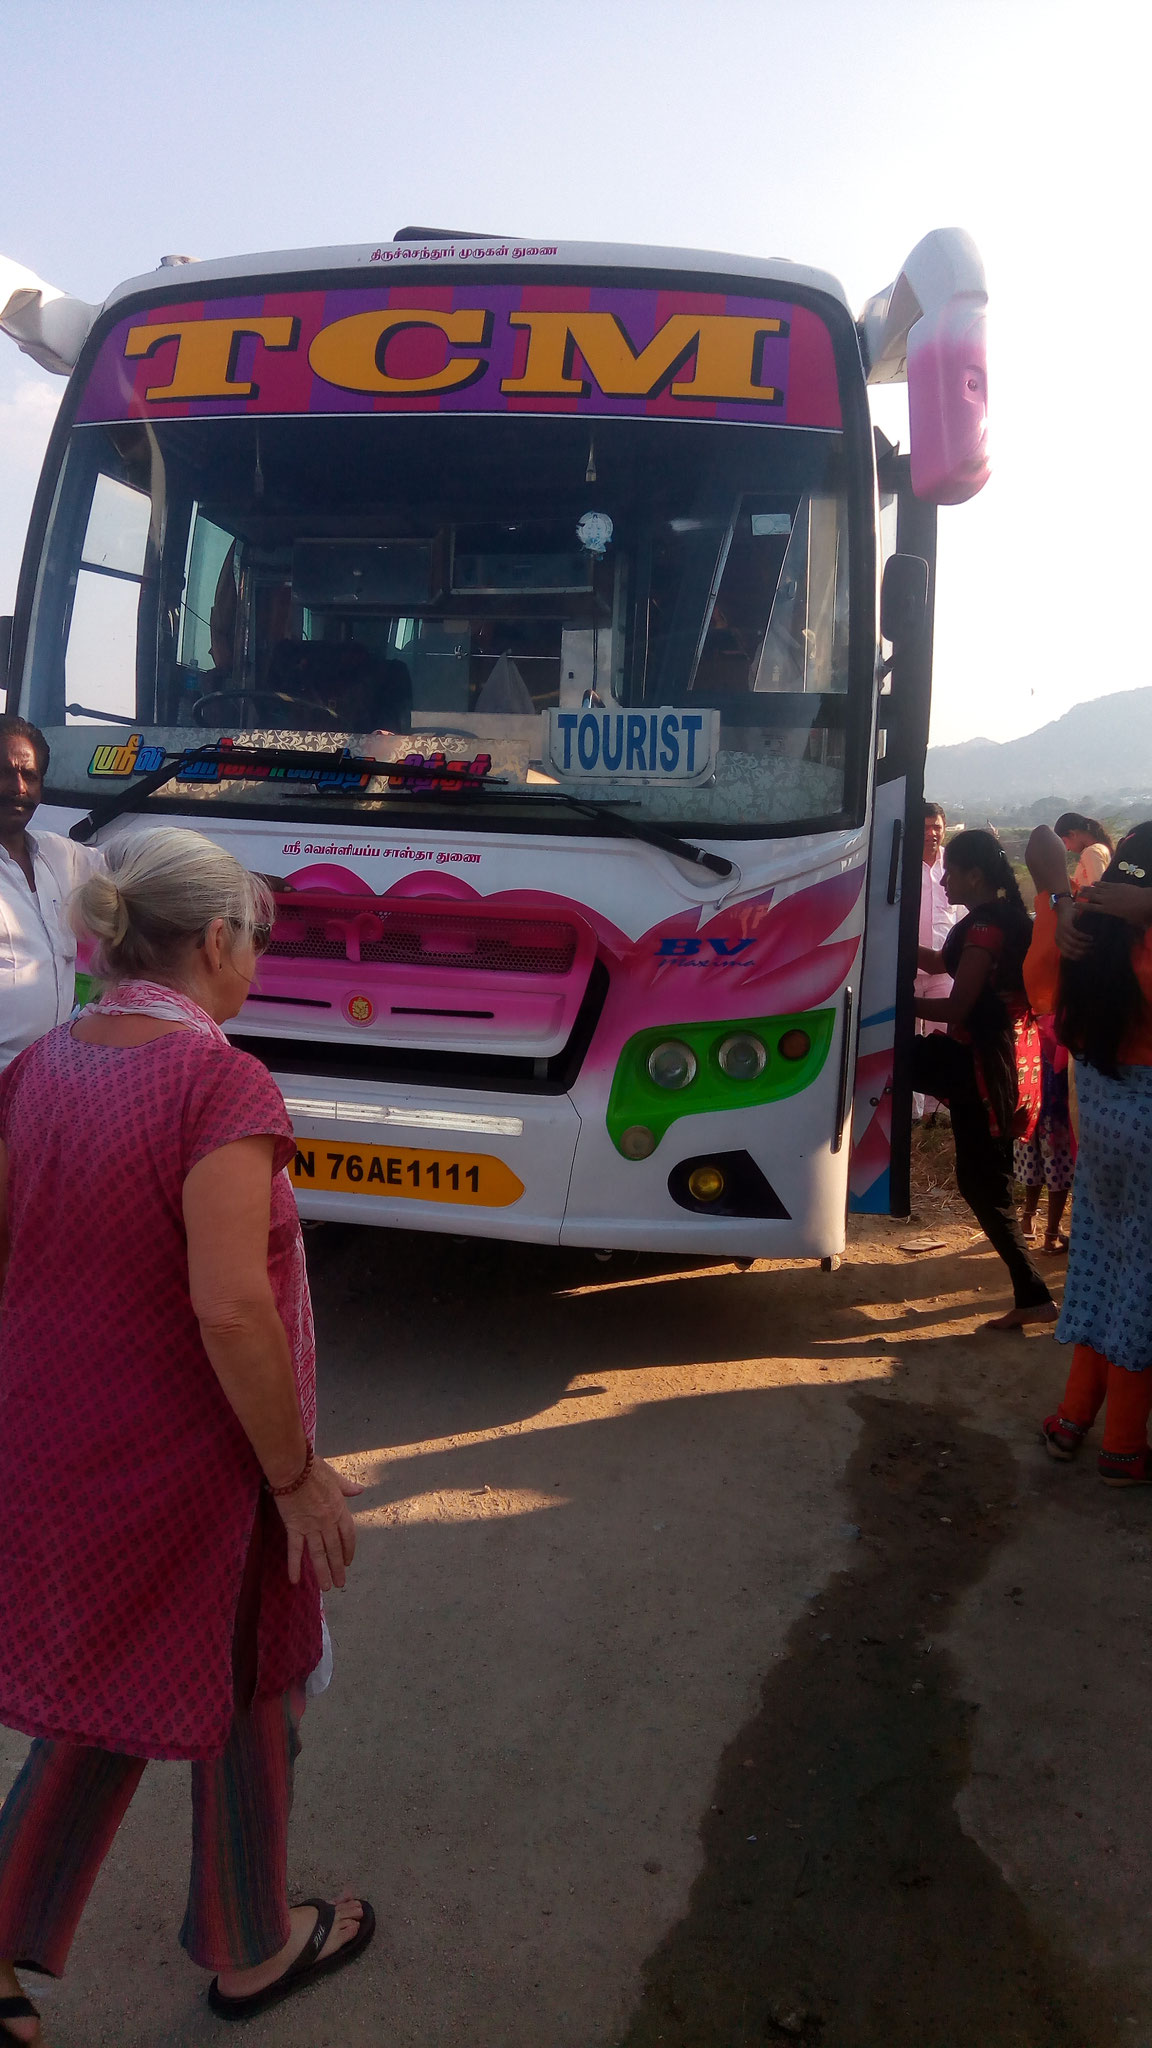 This is how we roll :) We book a bus from Tenkasi to Puttaparthi. Usually it takes 26 hours to reach Puttaparthi